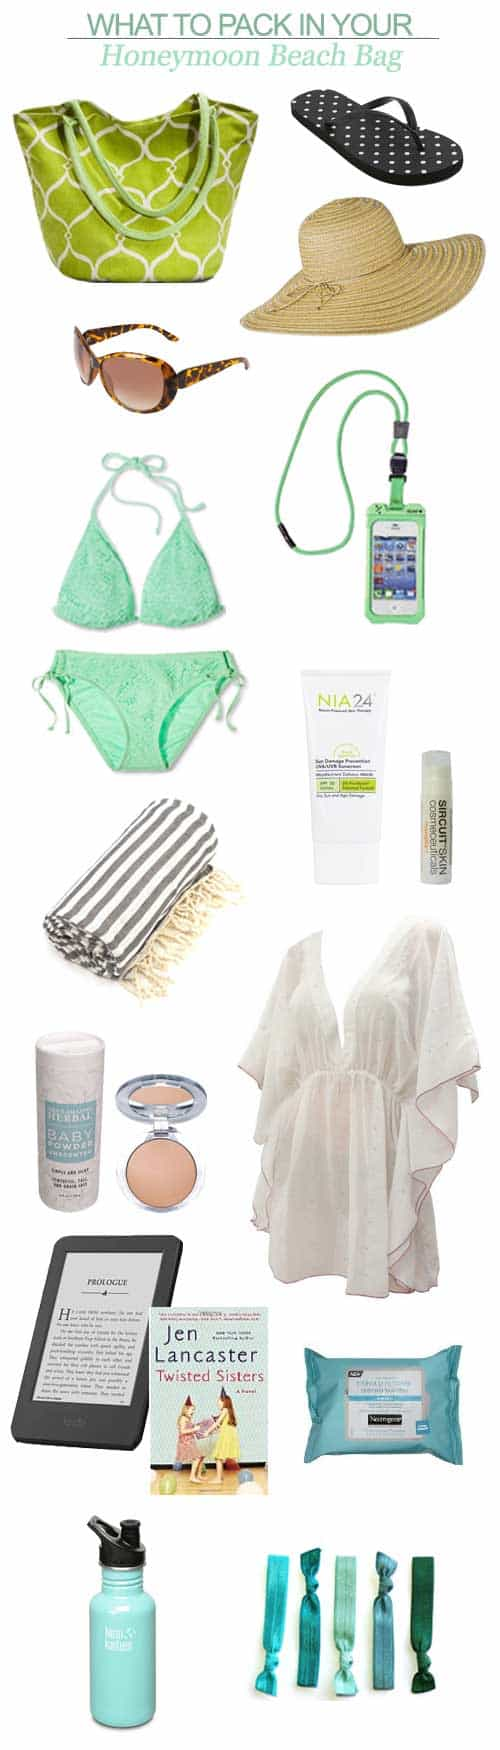 Here's my suggestions for what to pack in your honeymoon beach bag: